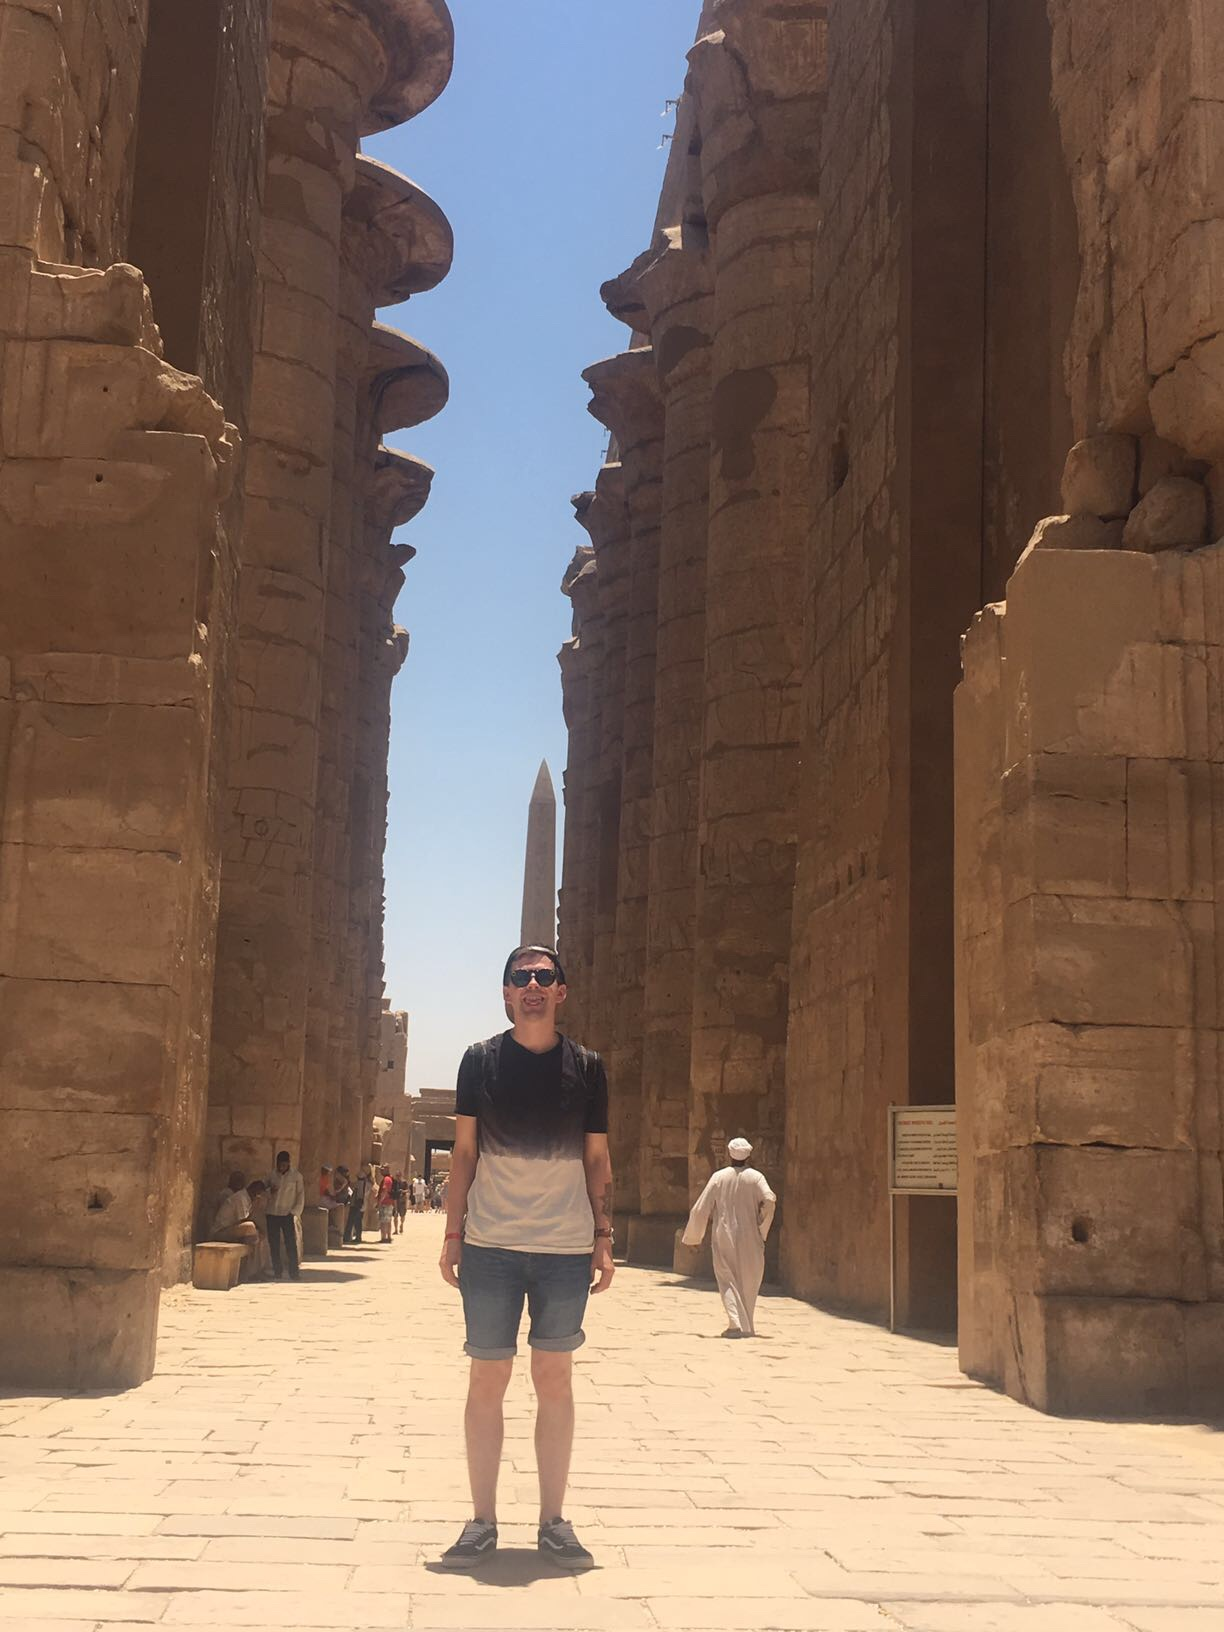 Me at the Karnak Temple, smiling really badly for a picture - not caring about my digital life.